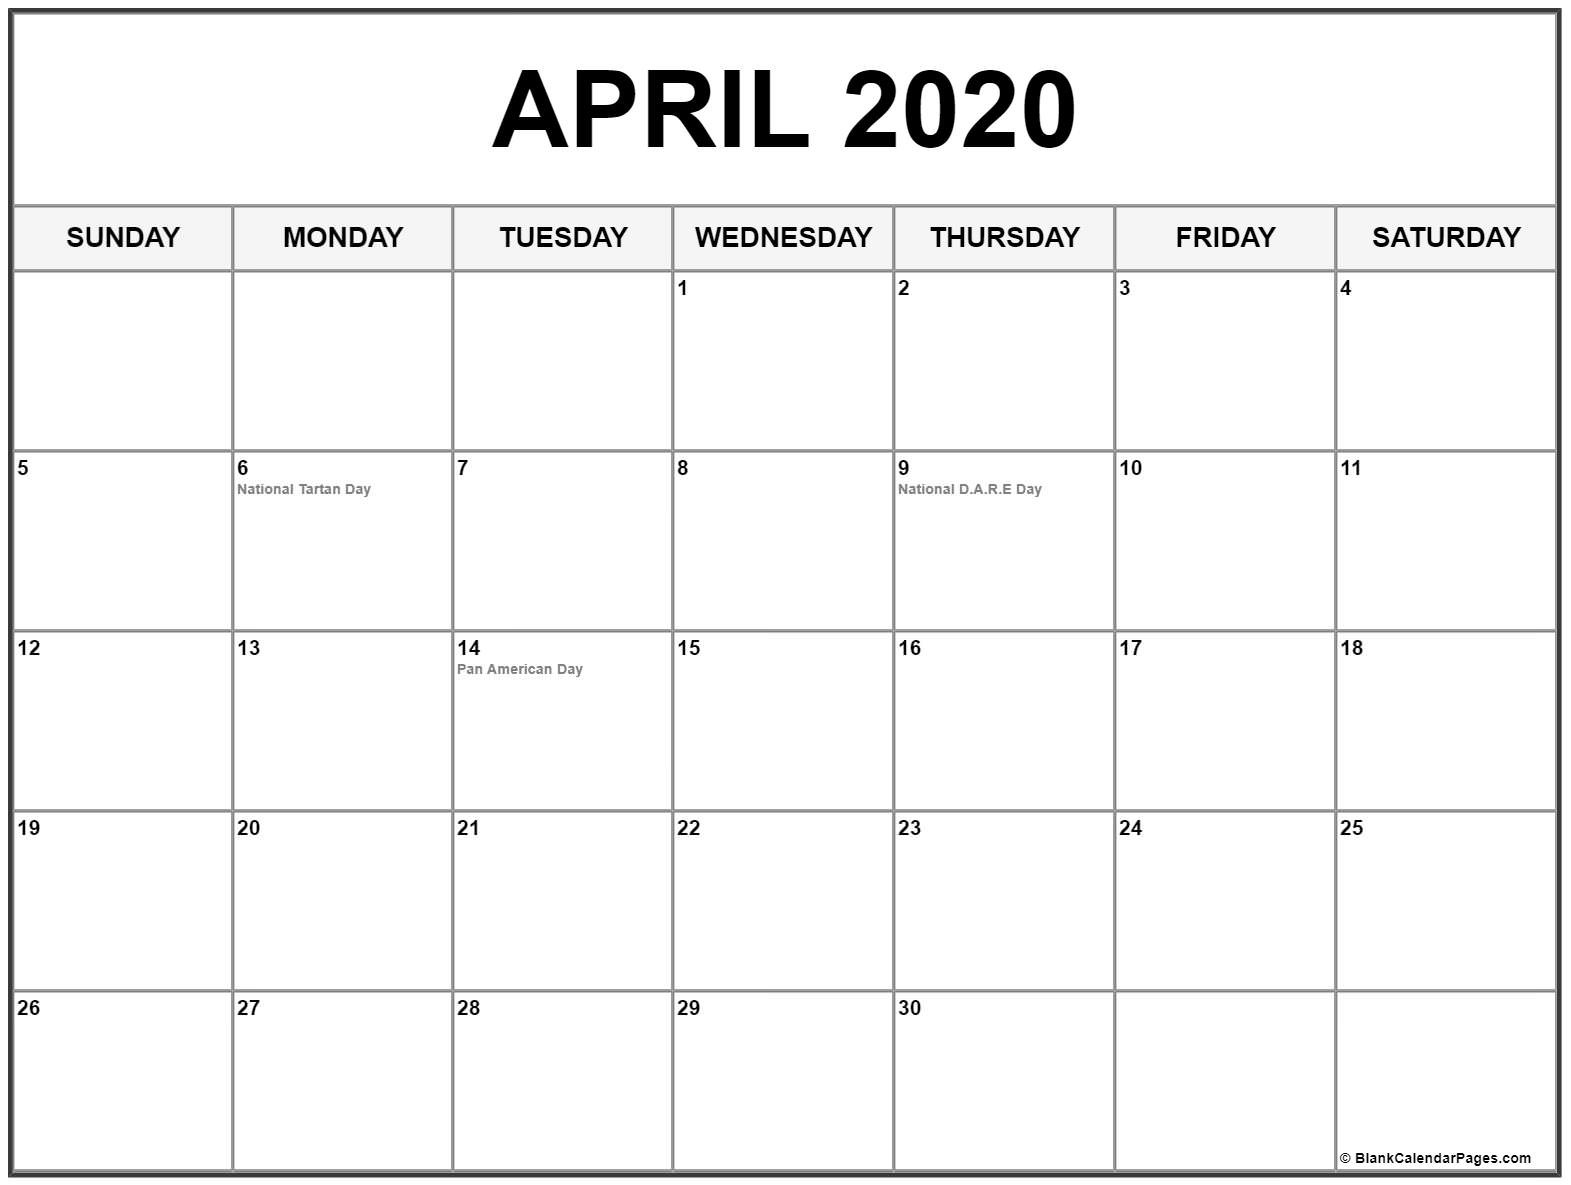 Collection Of April 2020 Calendars With Holidays-Printable 2020 Calendar With Holidays Usa